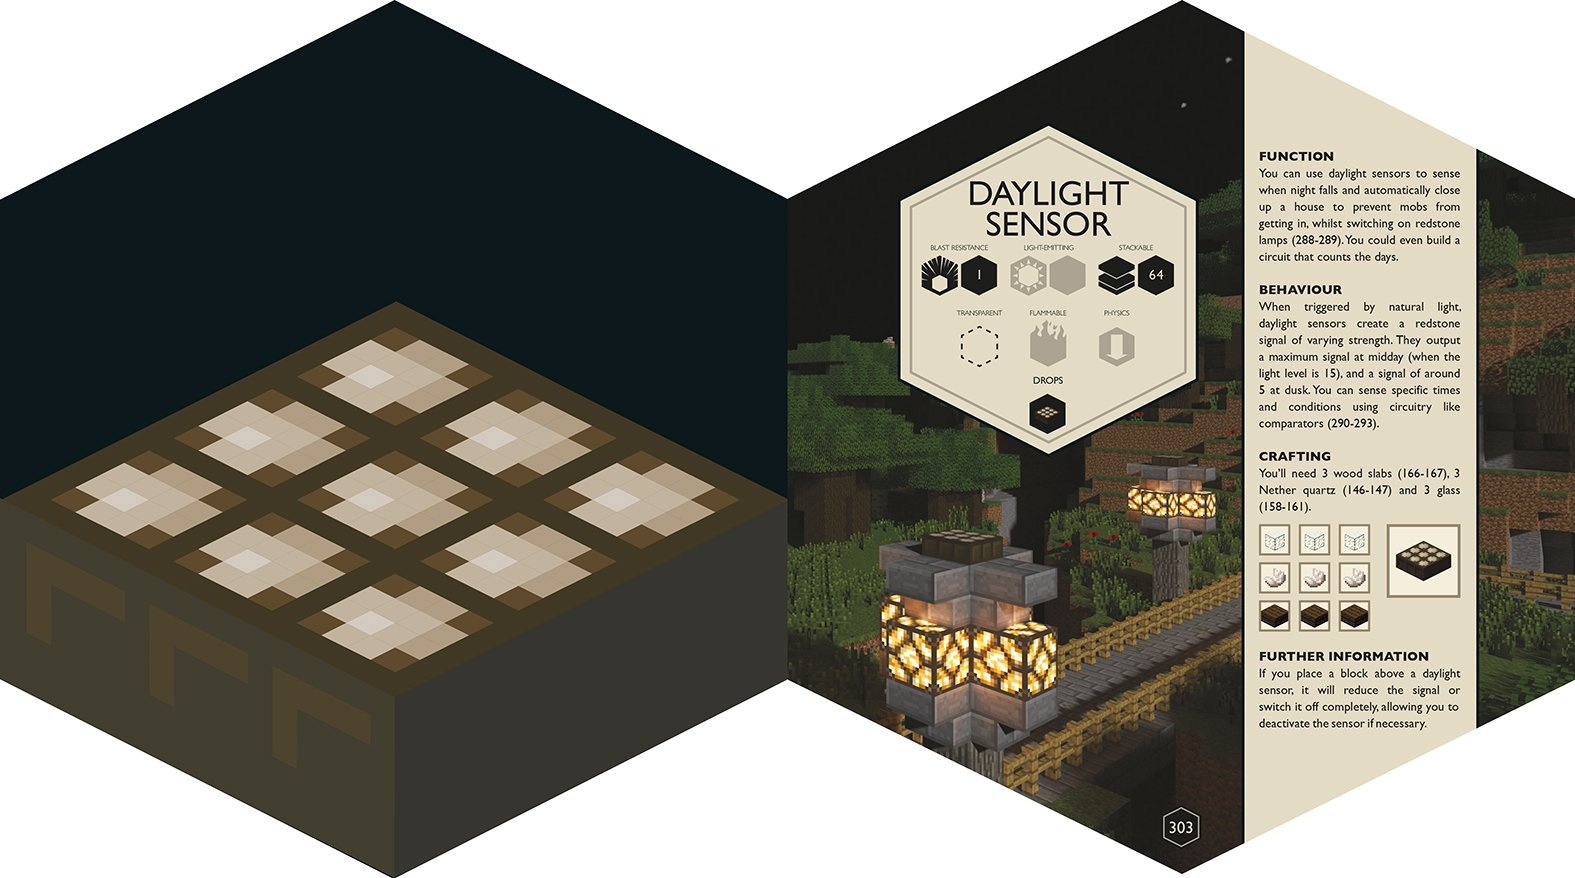 How To Make A Book Minecraft Xbox ~ Minecraft blockopedia: an official minecraft book from mojang